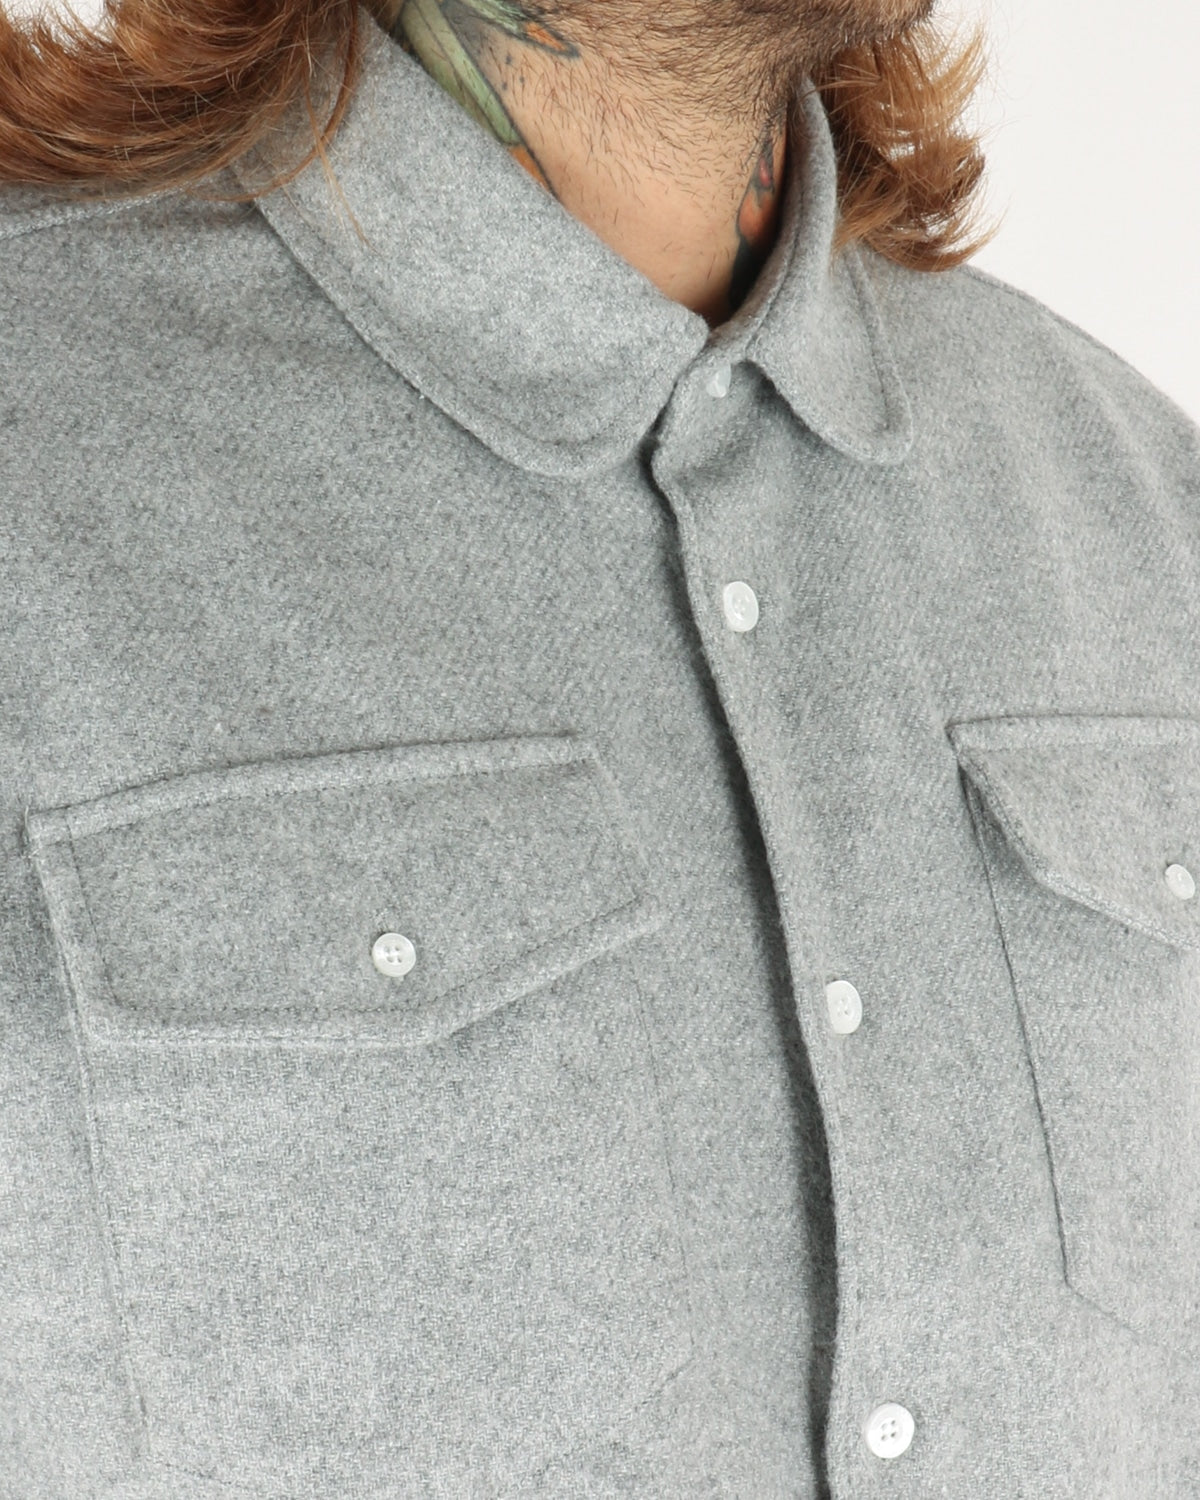 soulland_tom western shirt_grey_view